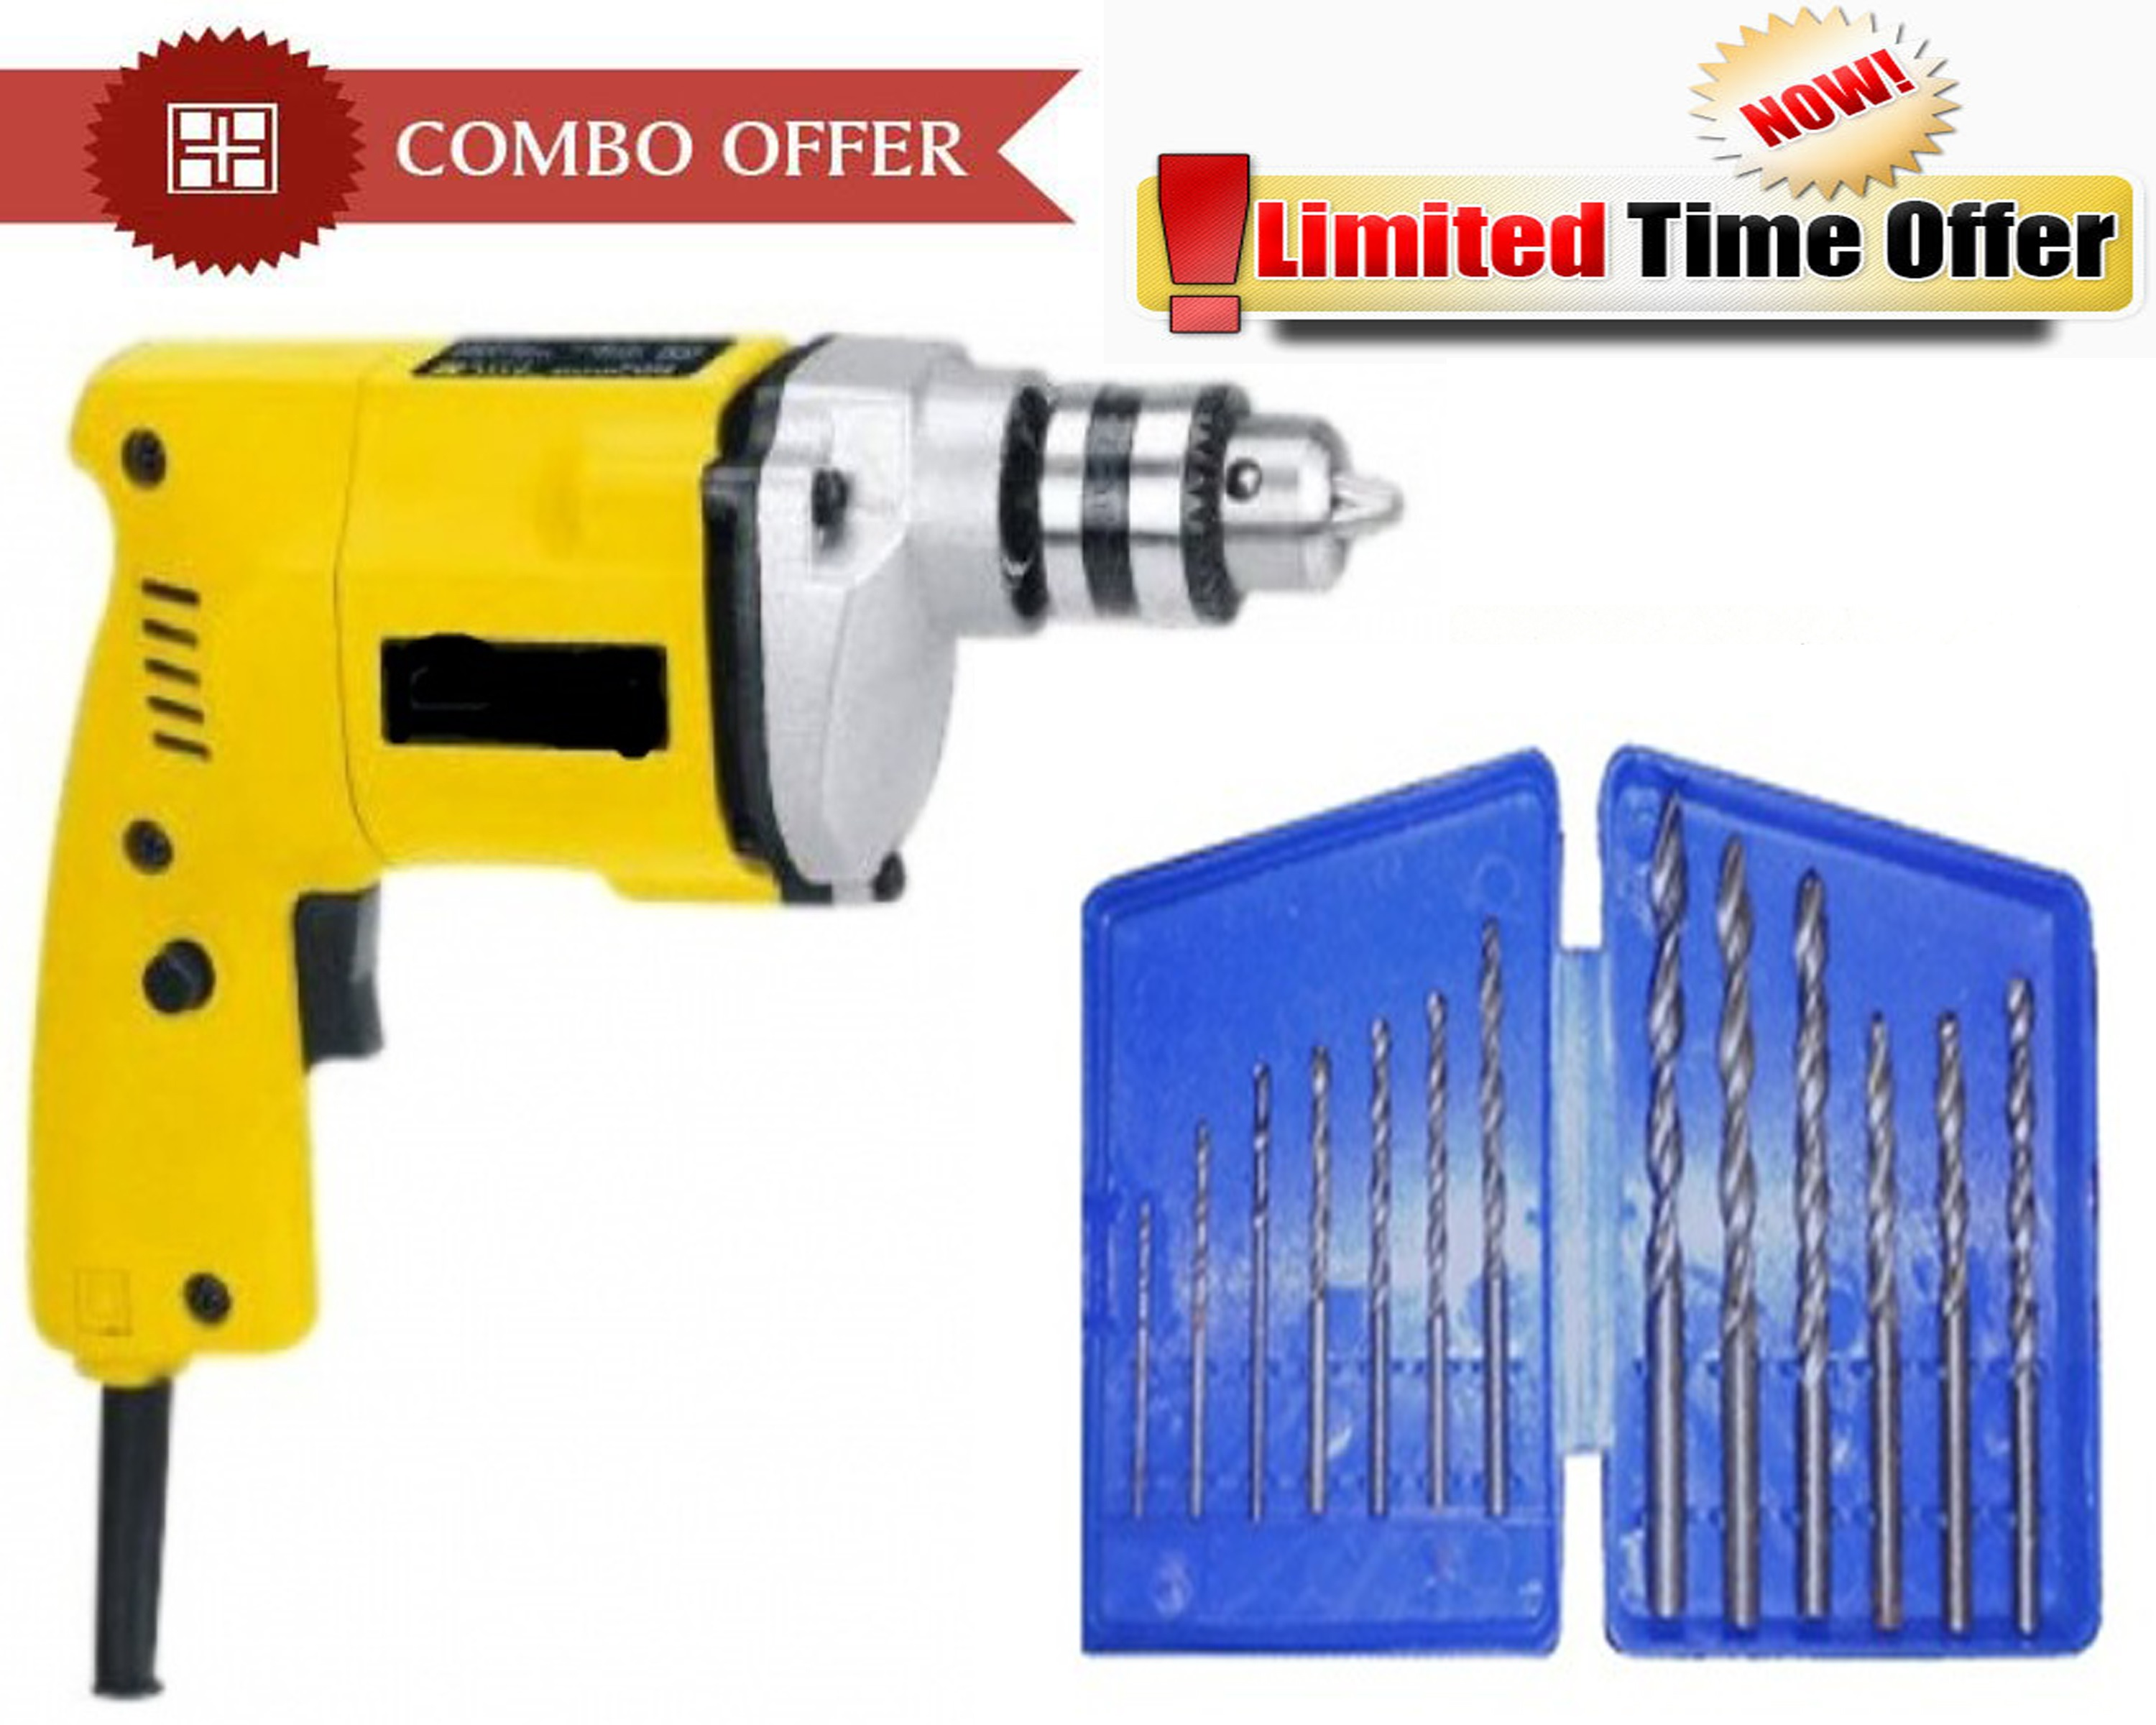 Special Combo Offer! Shopper52 10 mm Drill Machine With 13Pcs Drill Bit Set   CMDRL13B